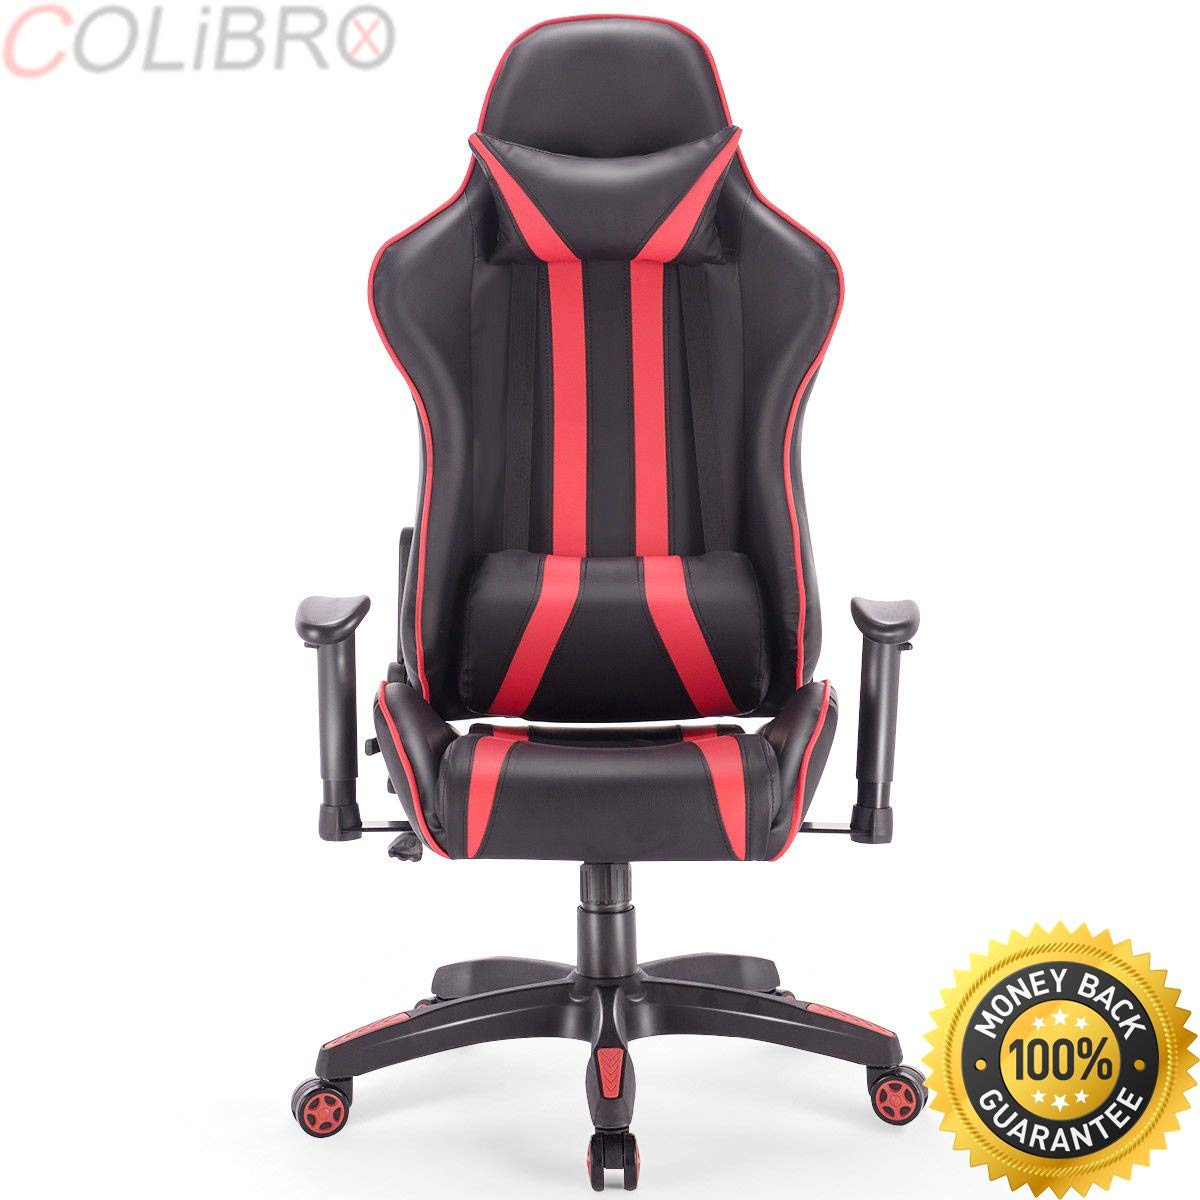 COLIBROX--Gaming Chair Racing High Back Reclining Chair Office Desk Task Computer Swivel. executive racing style high back reclining chair gaming chair office computer. ergonomic racing gaming chair.